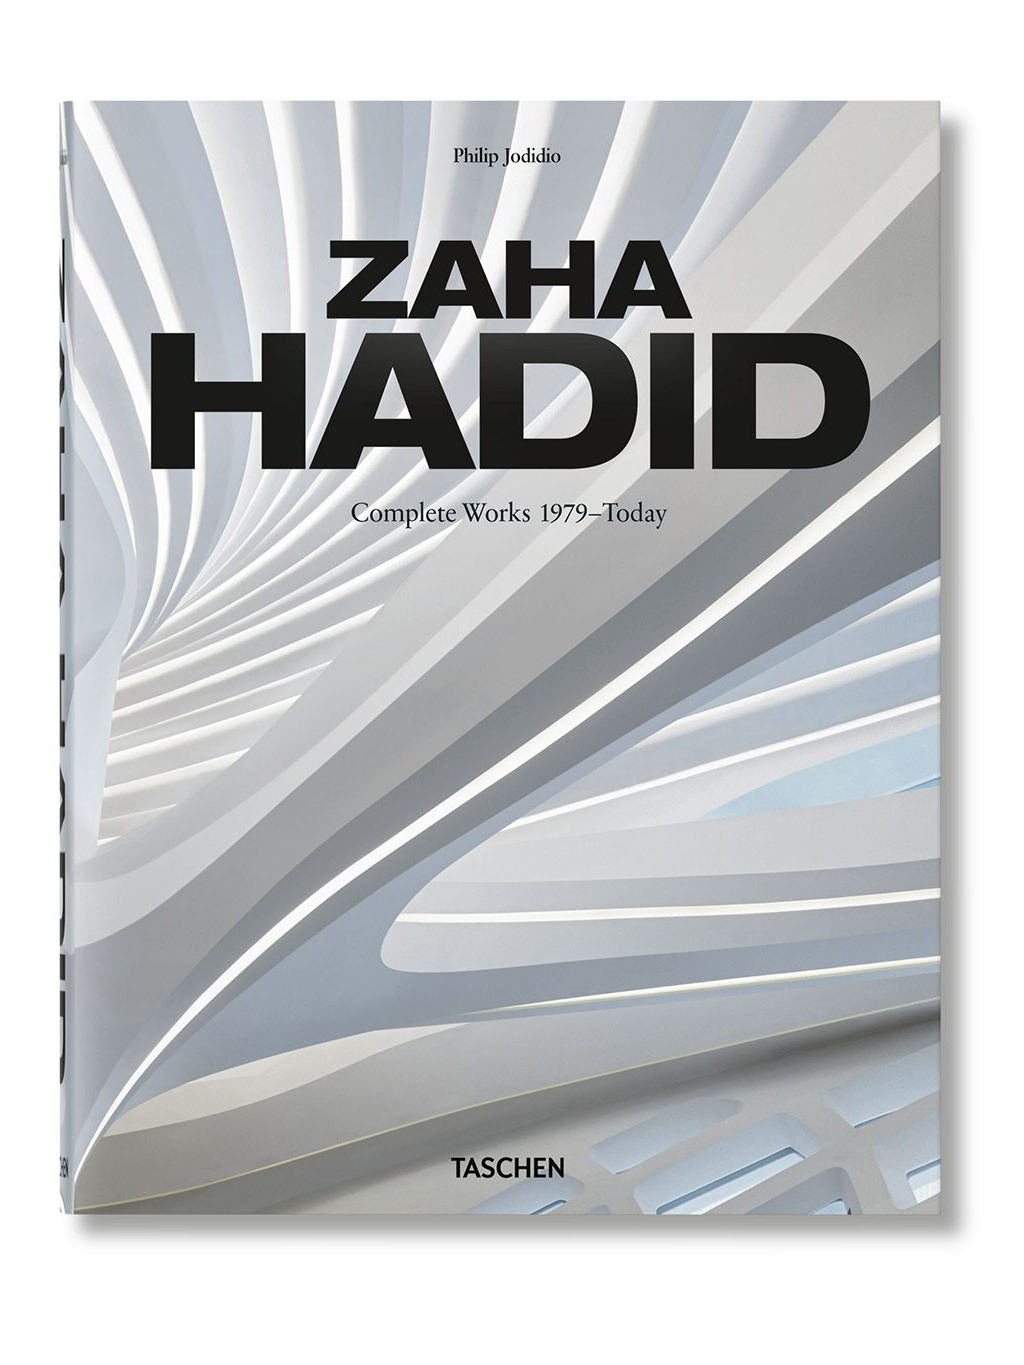 Zaha Hadid Complete Works 1979-Today 2019 Edition